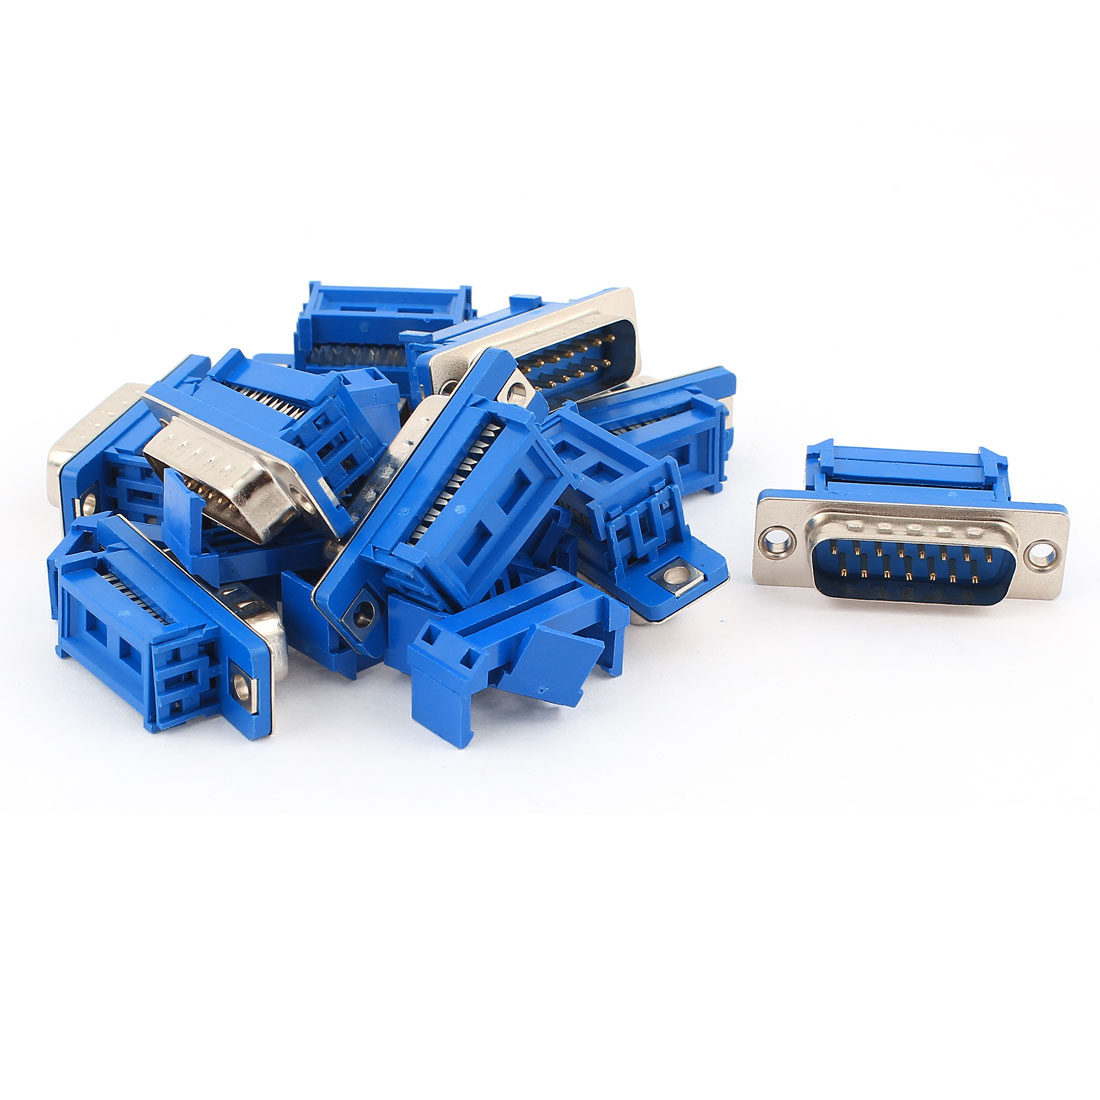 10pcs D-SUB DB15 15 Pin Male IDC Type Crimp Connector for Flat Cable